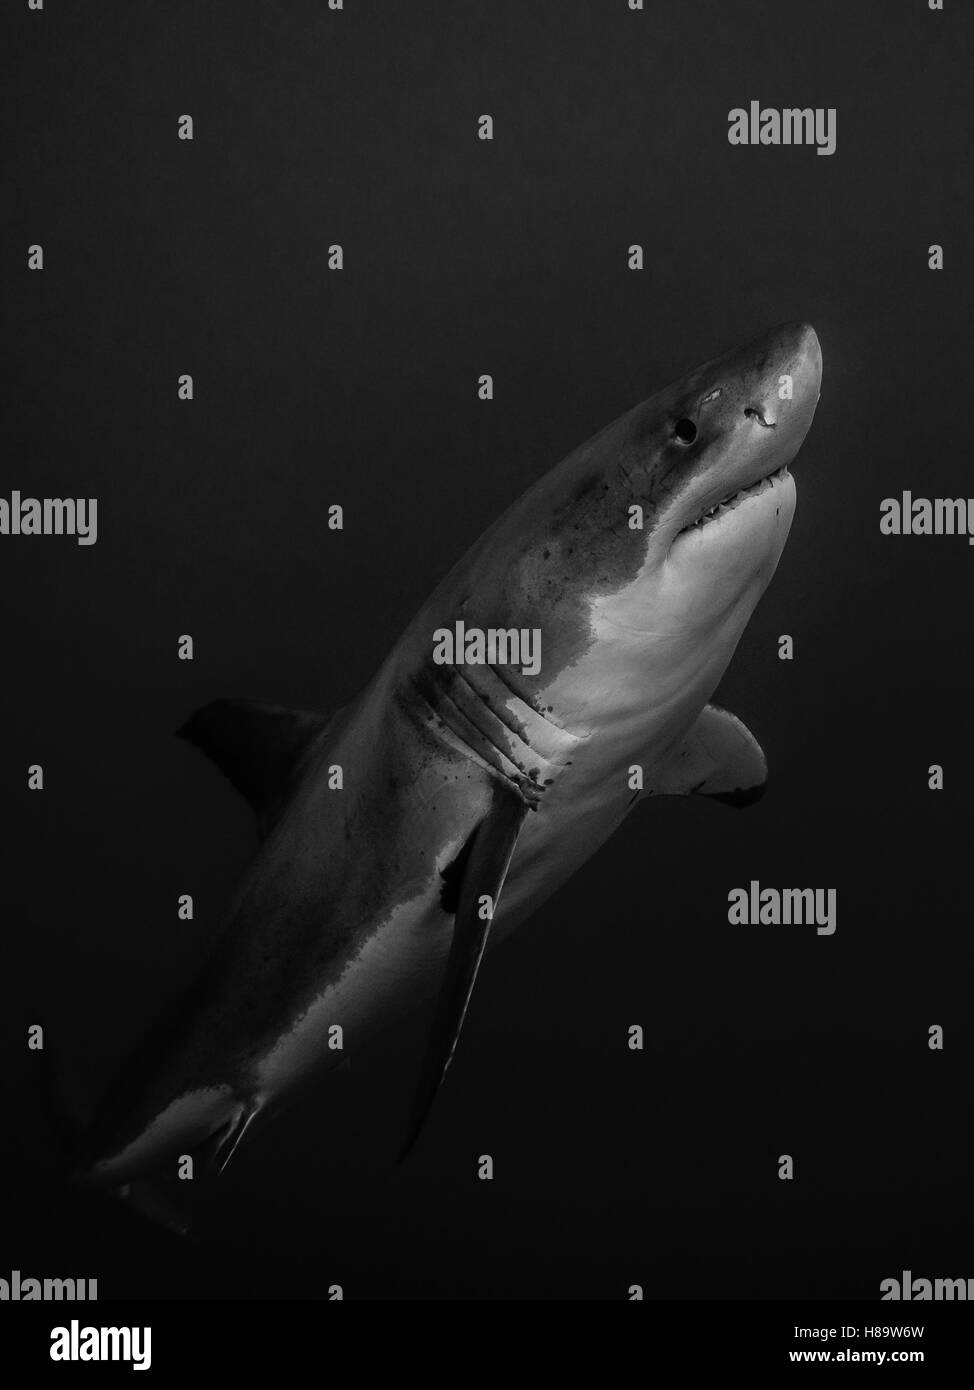 Great white shark emerging from the depths in the Pacific Ocean - Stock Image